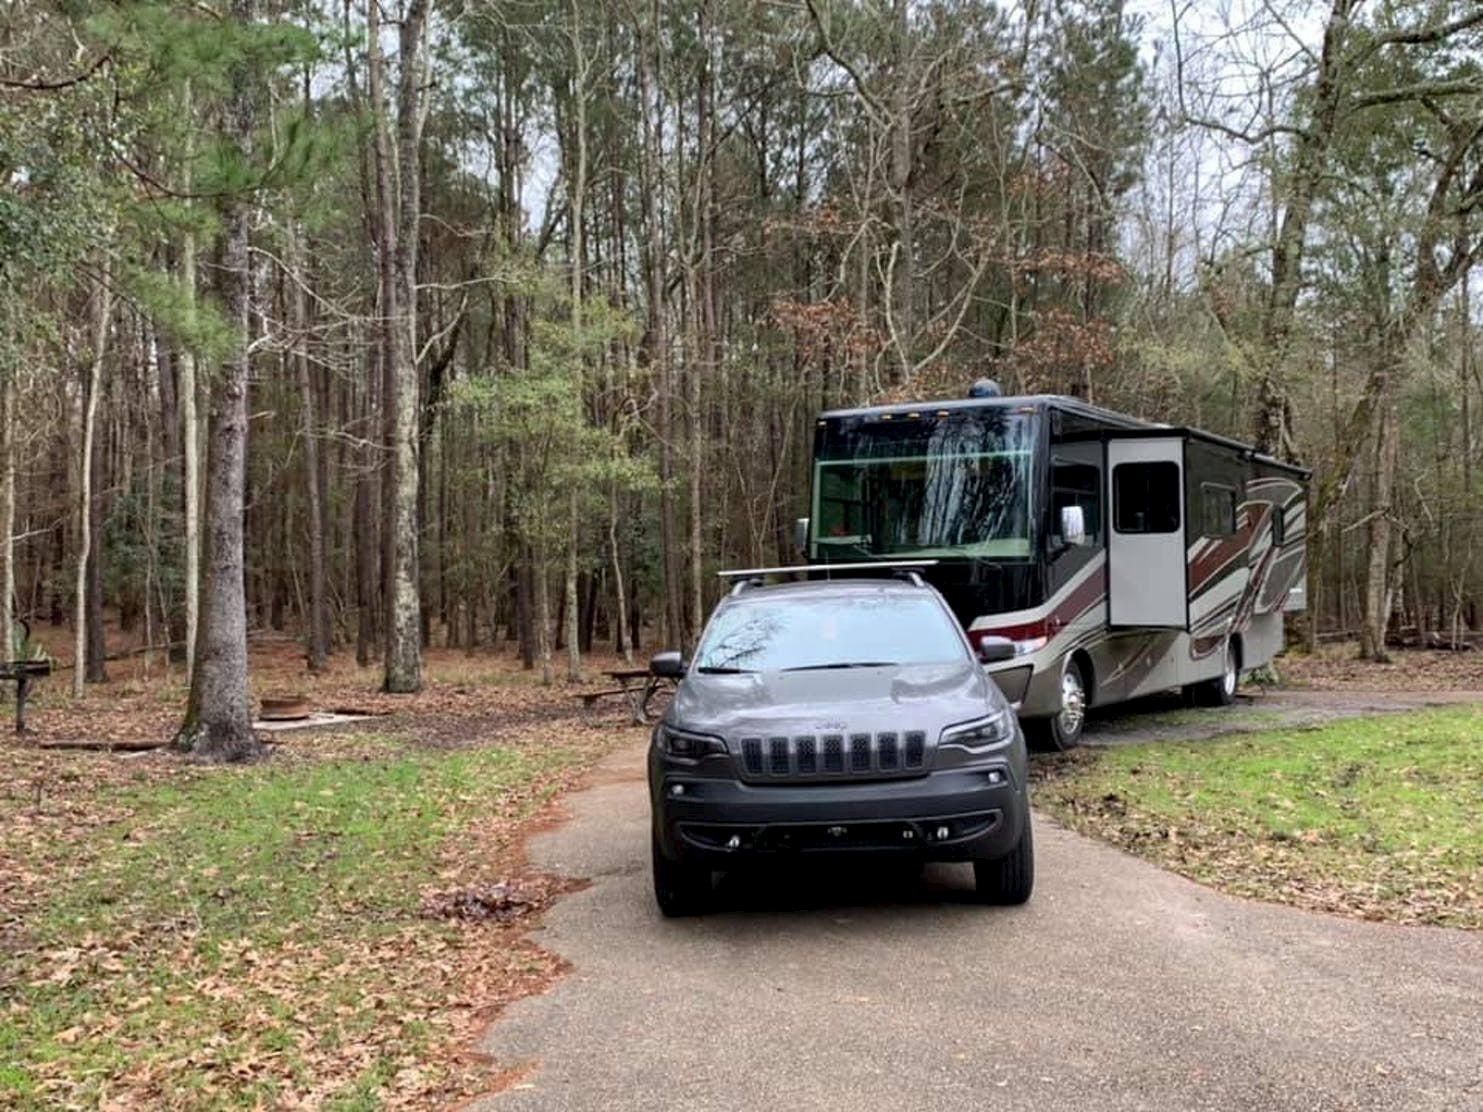 Black car parked in front of big rig RV at a forested campsite.